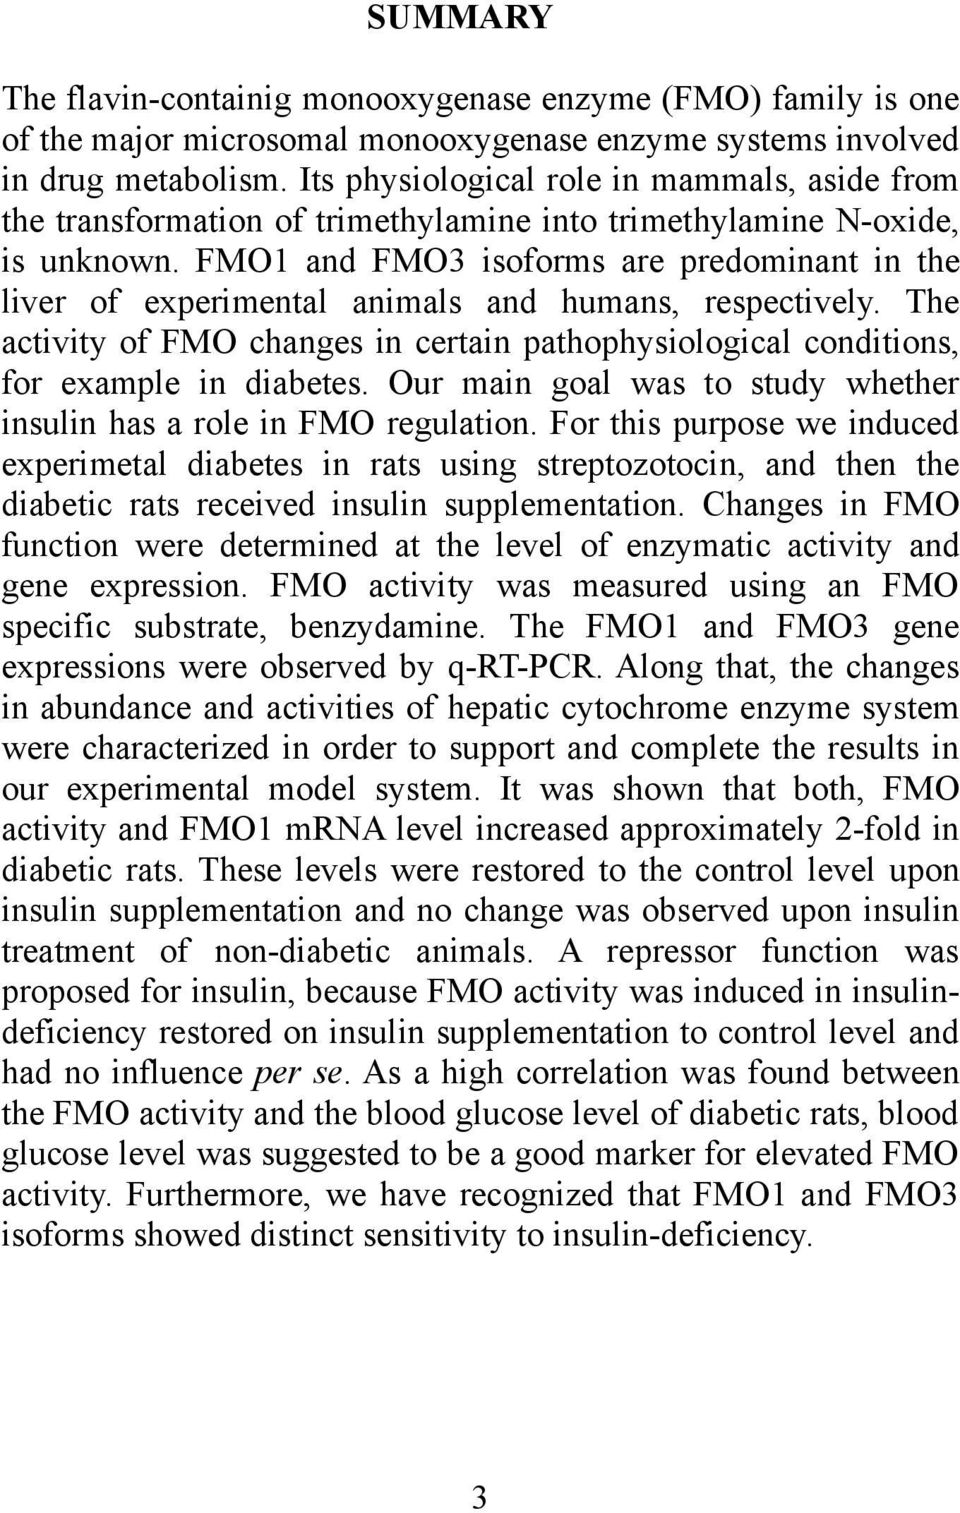 FMO1 and FMO3 isoforms are predominant in the liver of experimental animals and humans, respectively. The activity of FMO changes in certain pathophysiological conditions, for example in diabetes.